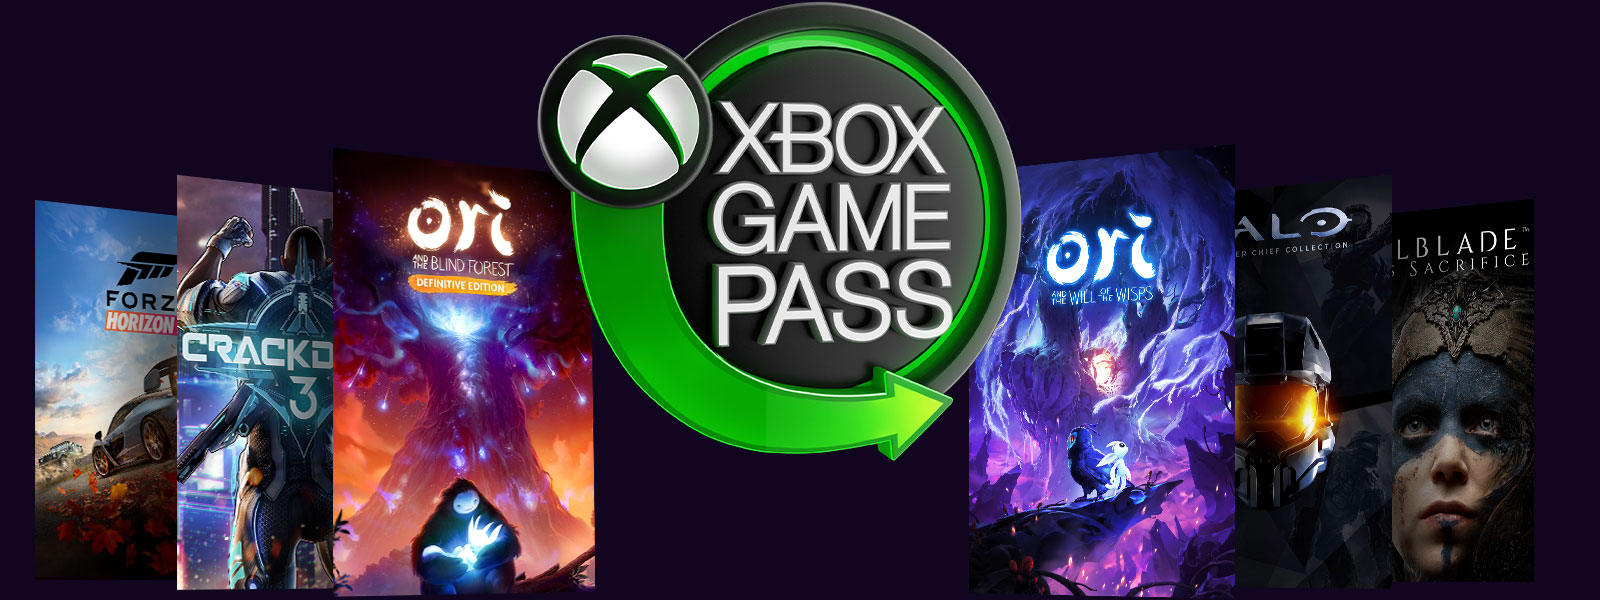 Logotipo de Xbox Game Pass con imagen de la caja de Ori and the Will of the Wisps, Ori and the Blind Forest, Crackdown 3, Halo, Forza Horizon 4 y Hellblade